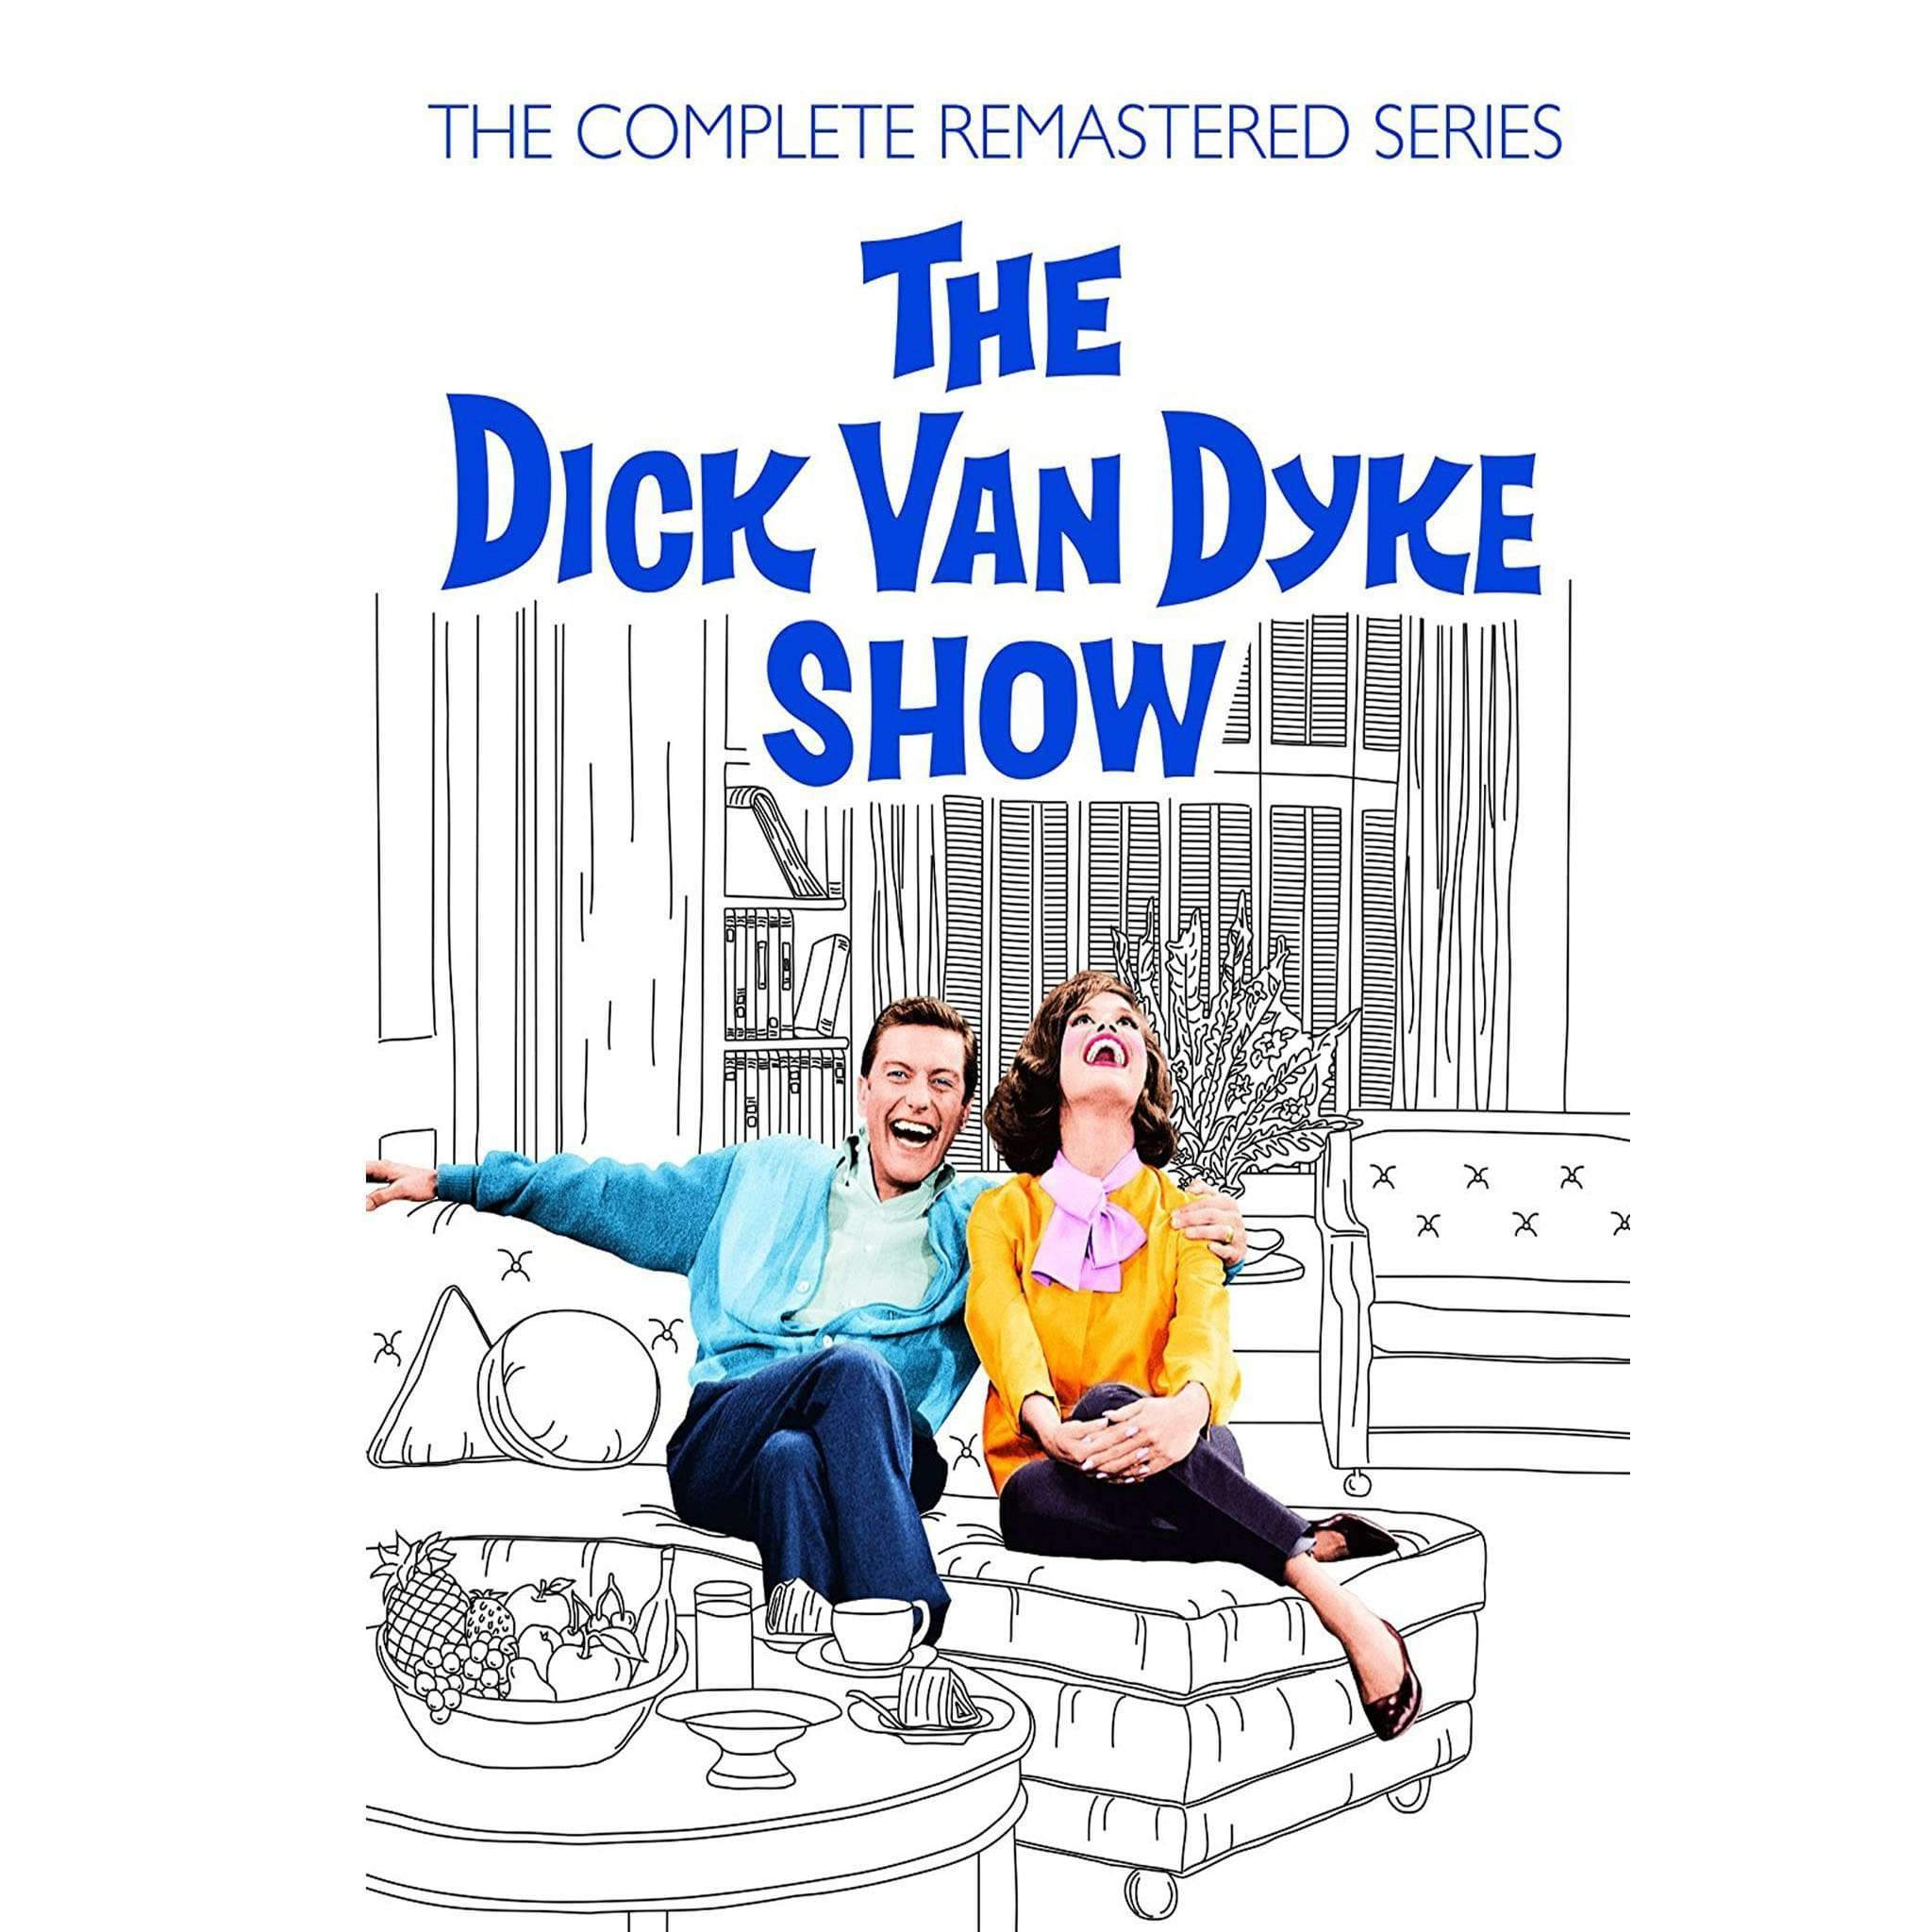 The Dick Van Dyke Show DVD Complete Series Box Set Image Entertainment DVDs & Blu-ray Discs > DVDs > Box Sets